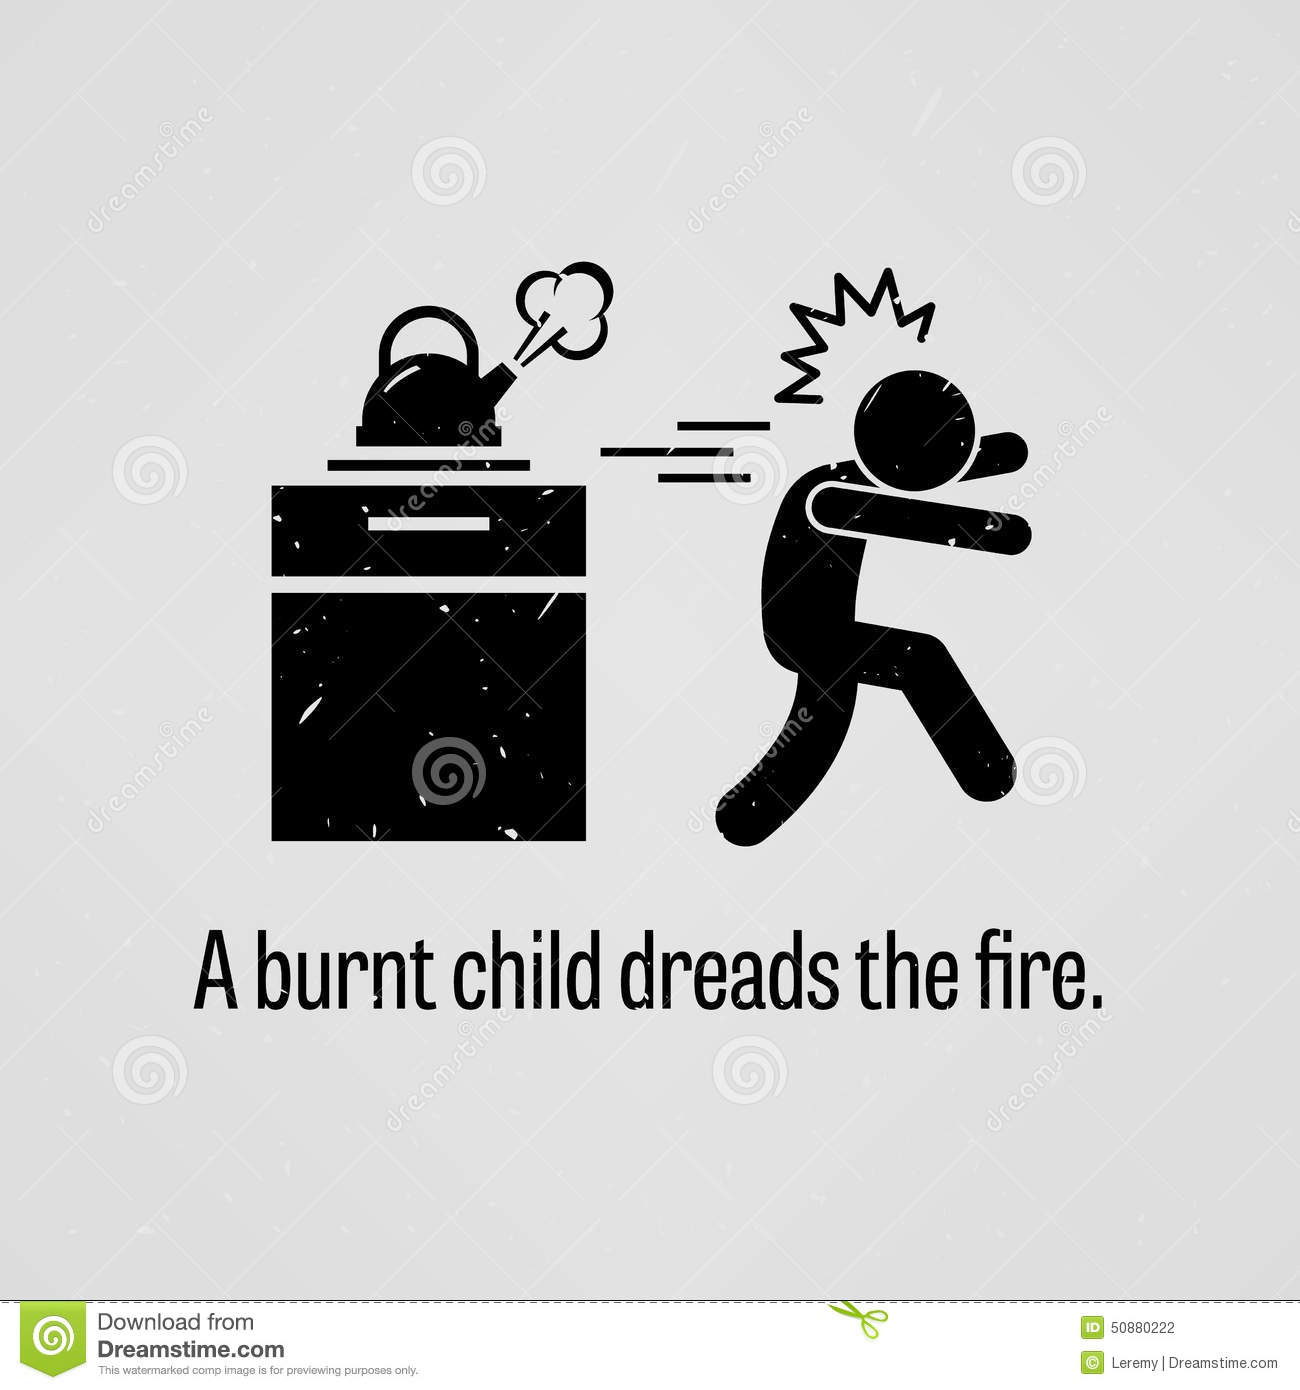 a burnt child dreads the fire 沪江词库精选a burnt child dreads the fire是什么意思、英语单词推荐、a burnt child dreads the fire的用法、a burnt child dreads the fire是什么意思、翻译a burnt child dreads the fire是什么意思.